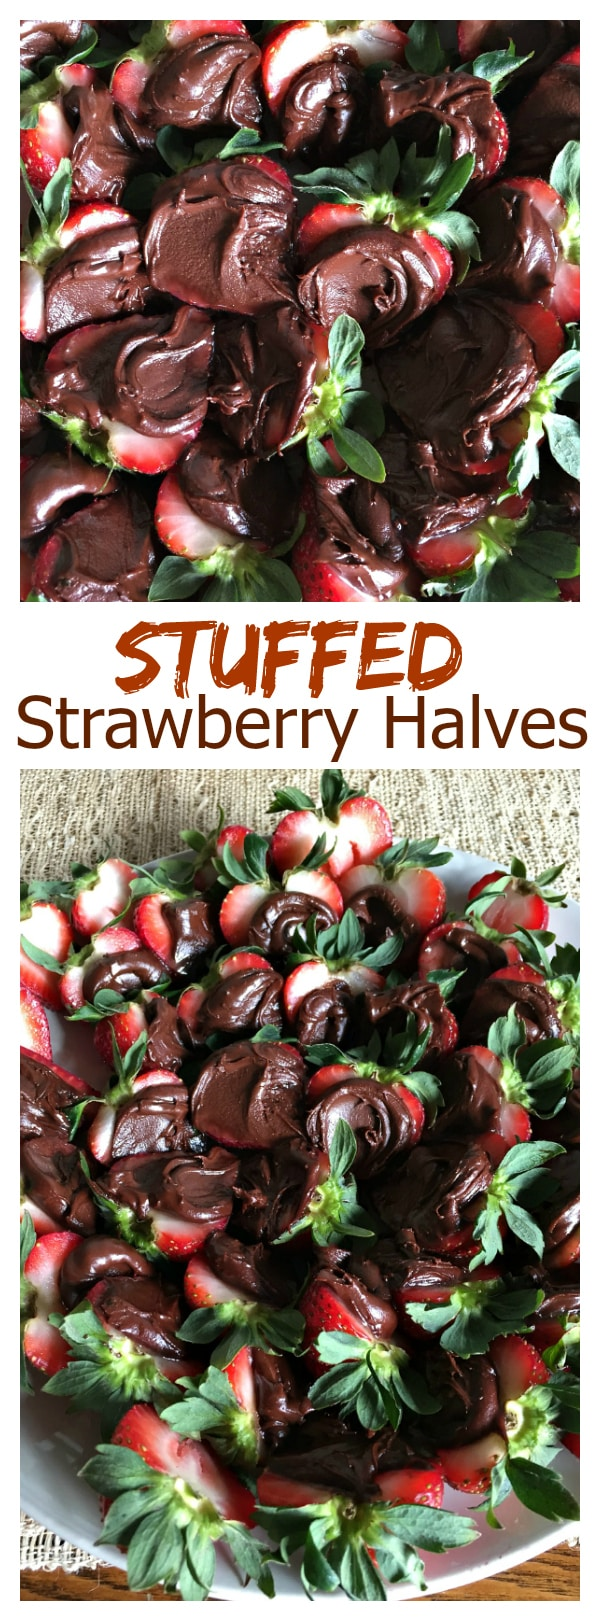 Stuffed Strawberry Halves